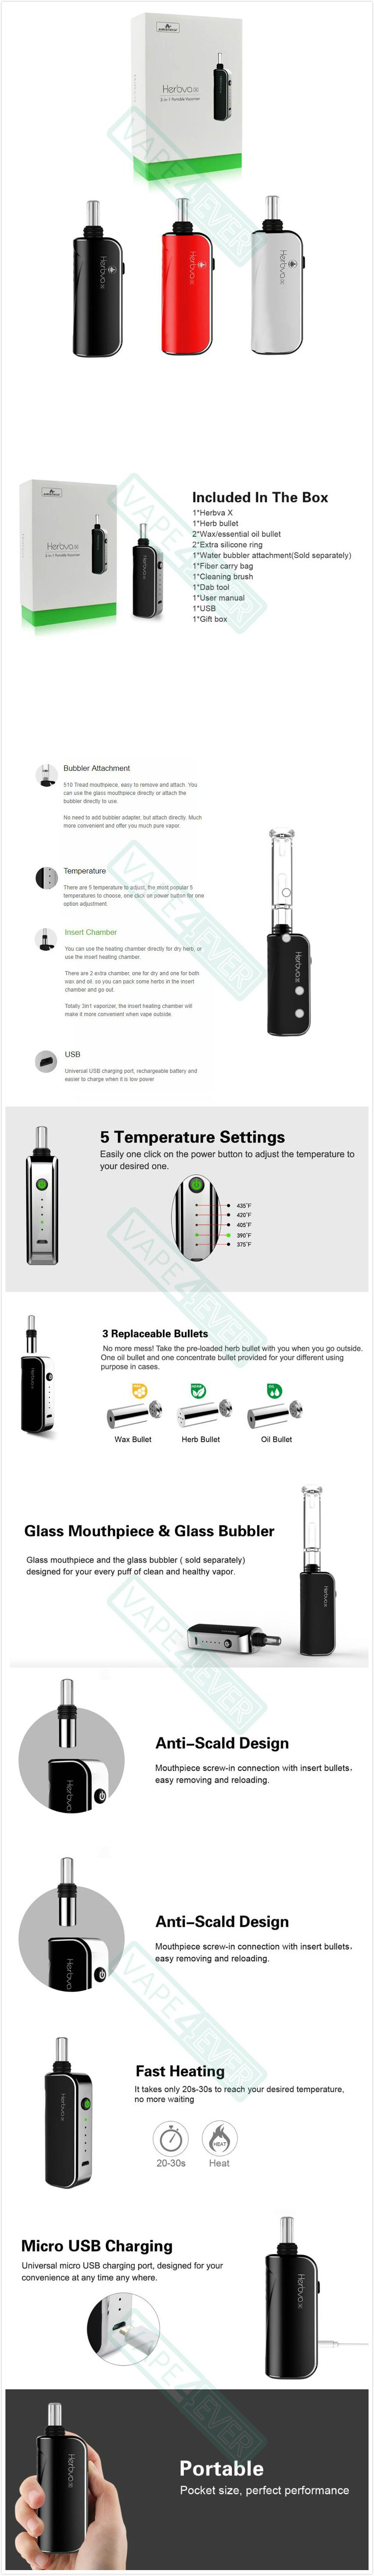 Airistech Herbva X 1000mAh 3-in-1 Vaporizer Kit For Dry Herb/Wax/Oil Instruction